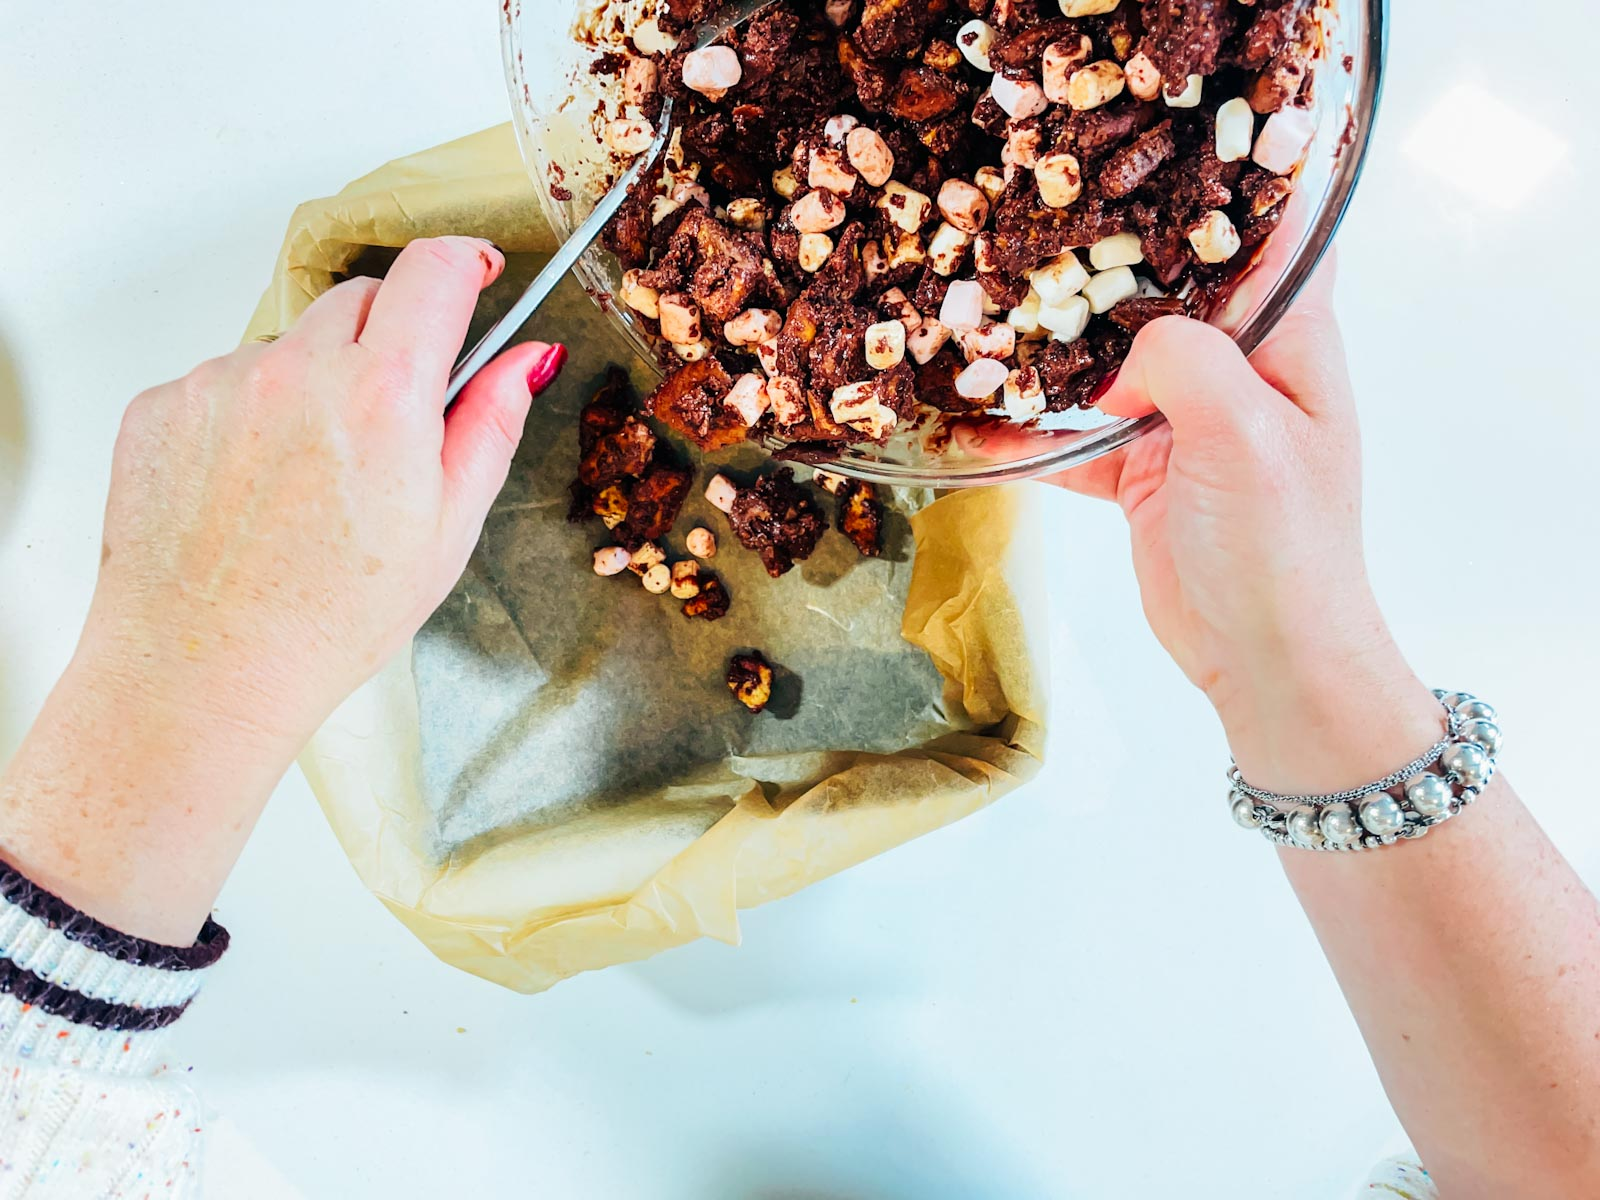 Add the rocky road mixture to a tin lined with grease proof paper